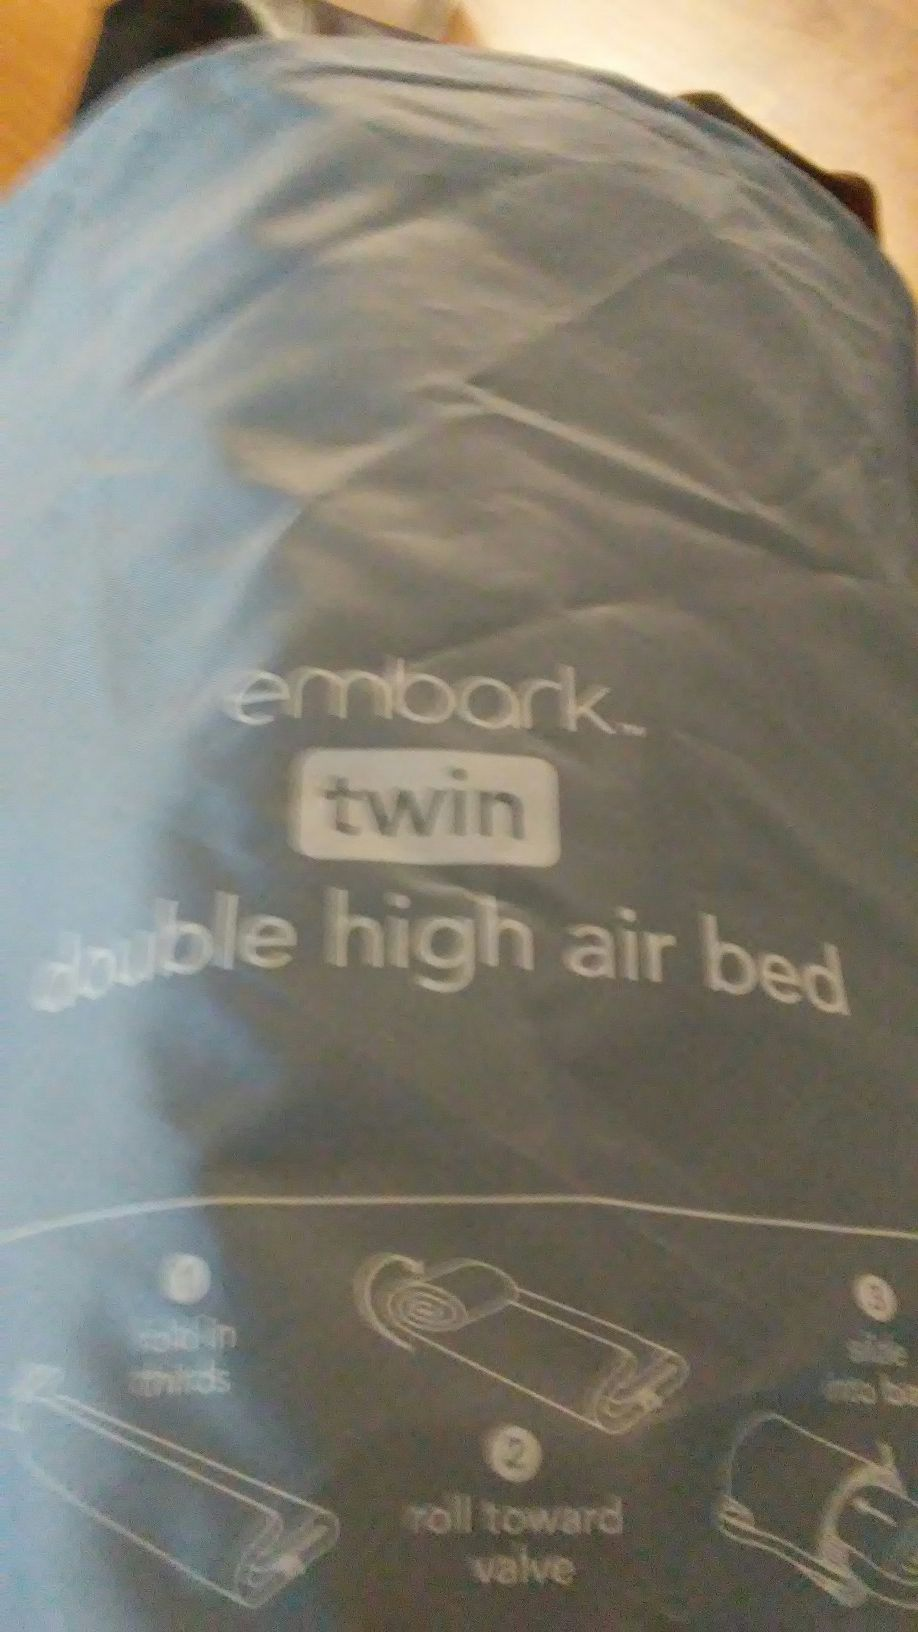 Photo Embark, twin air bed . new